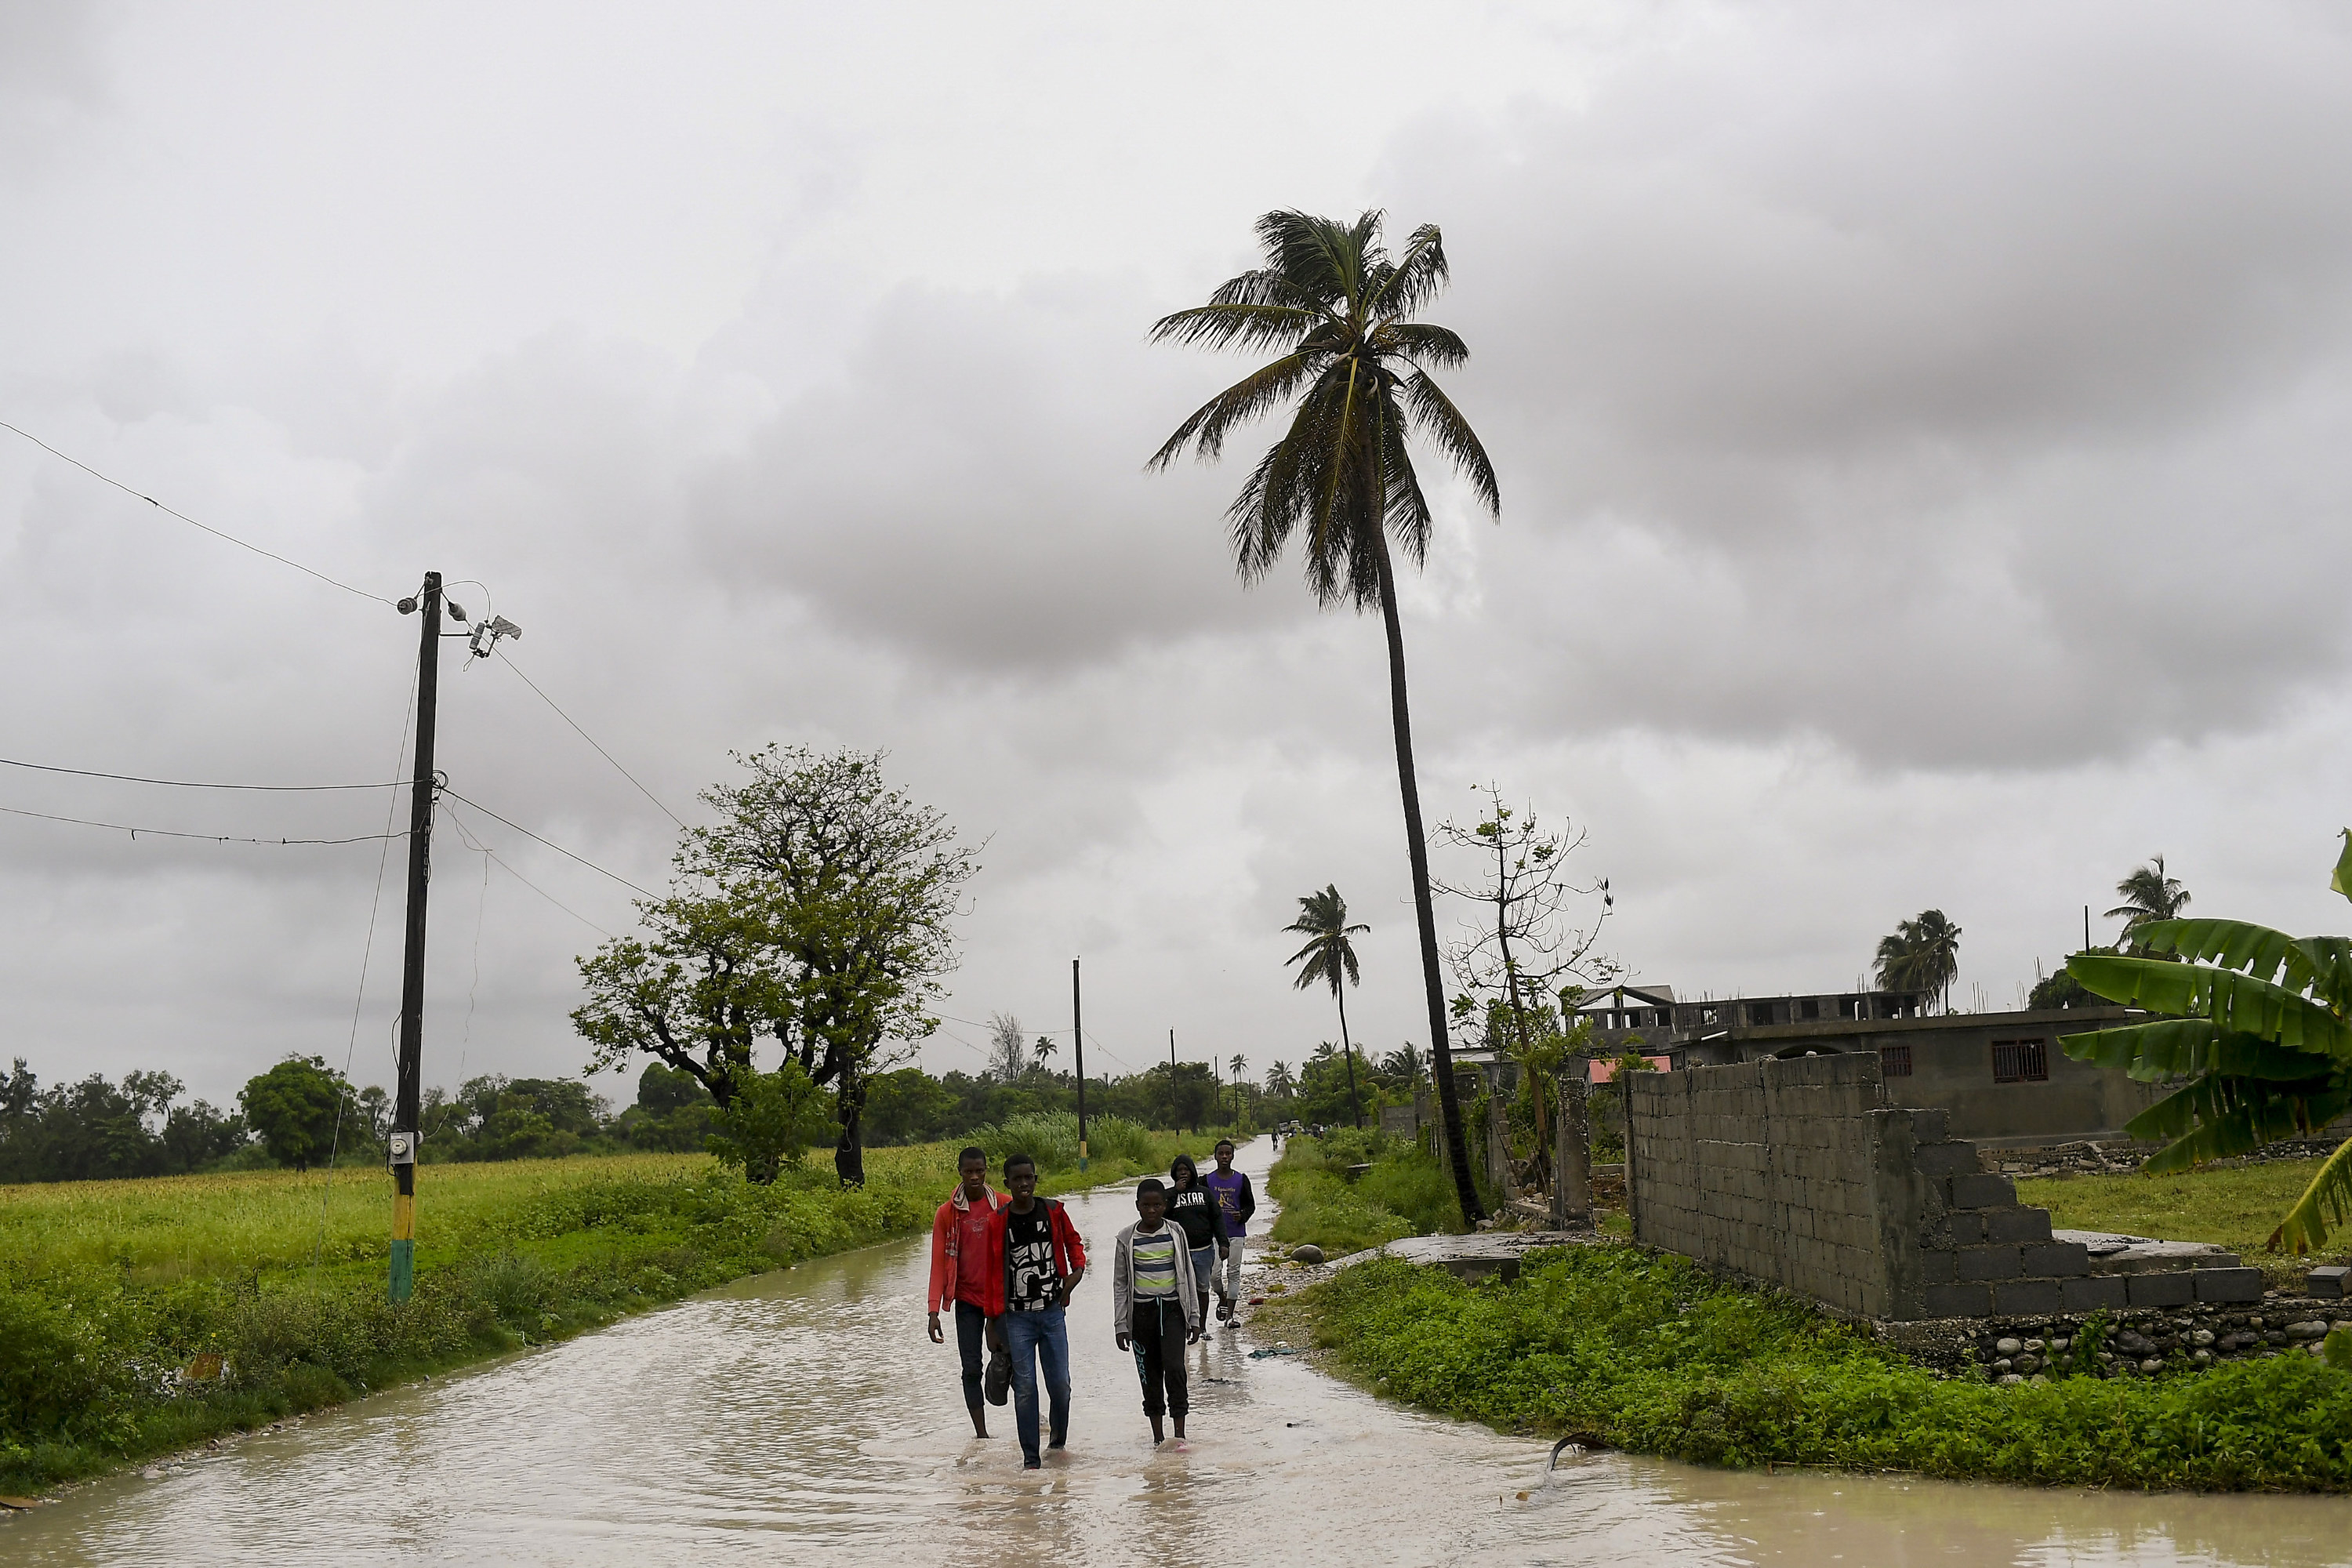 Haitian residents walk in flooded streets during a tropical storm